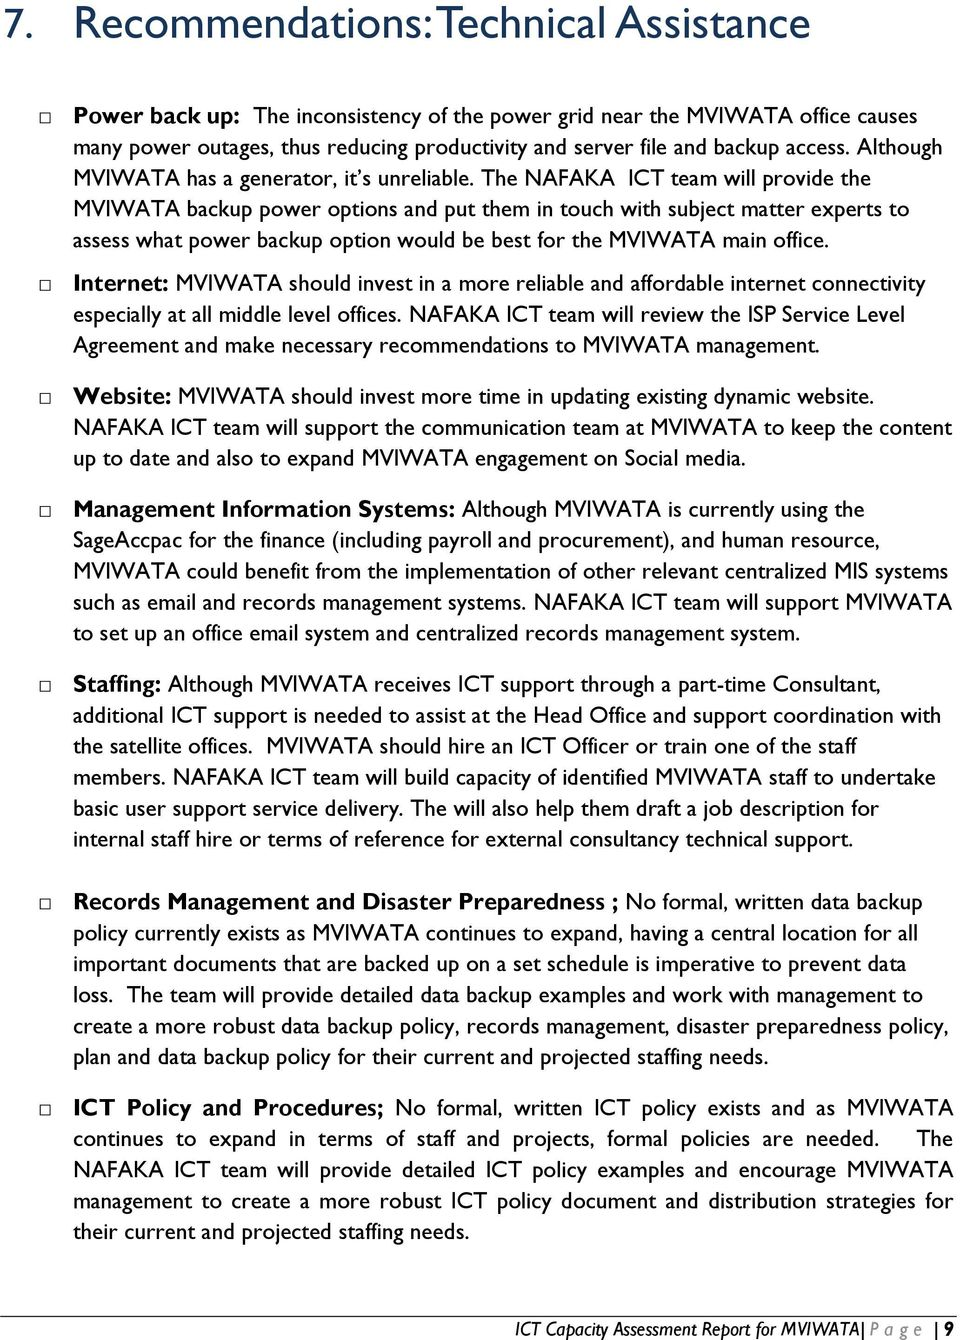 The NAFAKA ICT team will provide the MVIWATA backup power options and put them in touch with subject matter experts to assess what power backup option would be best for the MVIWATA main office.